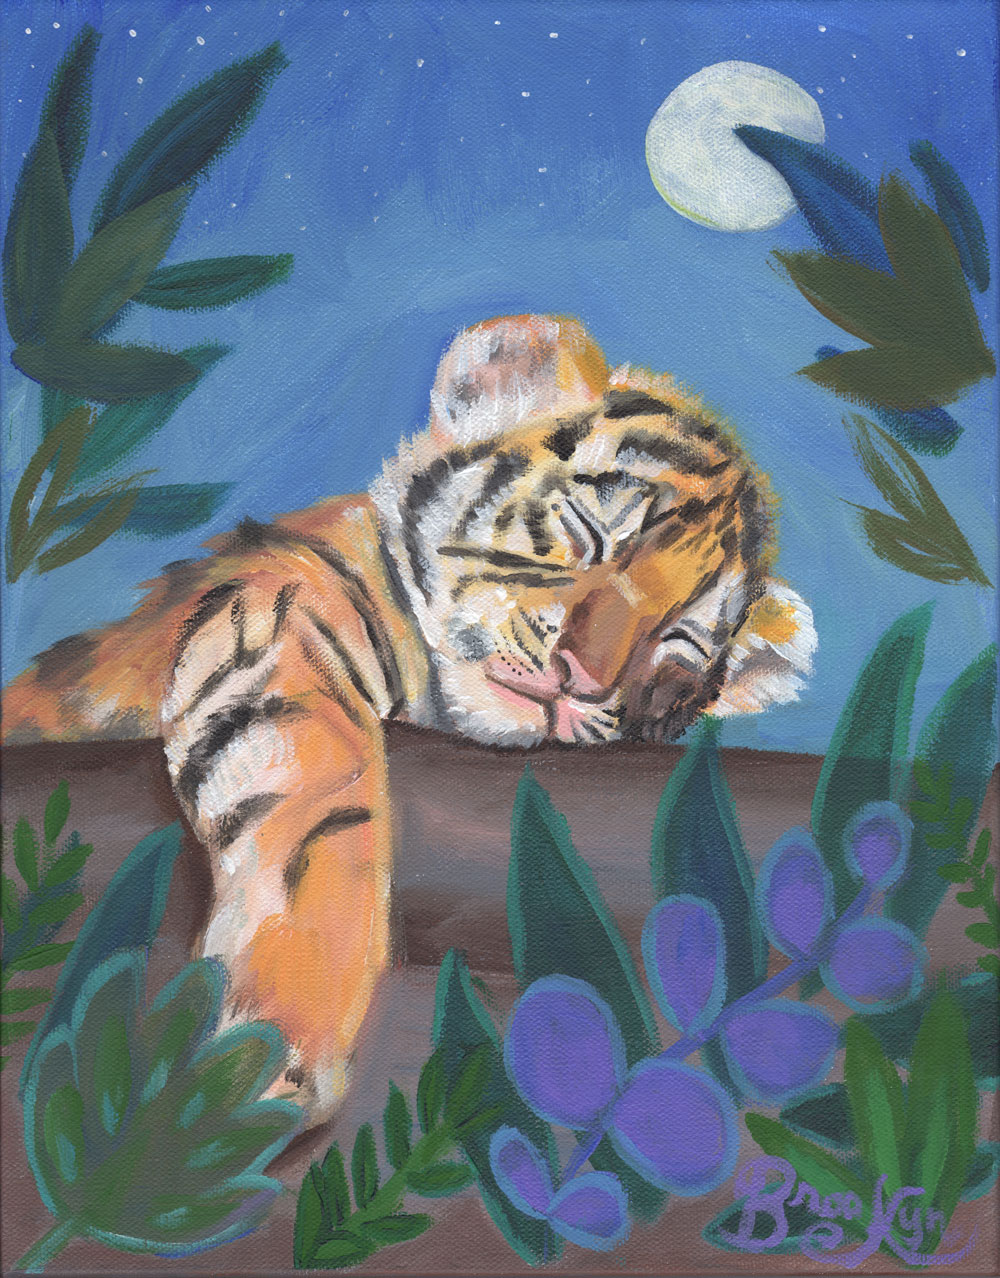 """Original artwork by Brooklyn Lamb.  Acrylic painting depicting a sleeping baby tiger surrounded with floral beauty and a big white moon in her series, """"What Do the Creatures Dream?""""  Painted onto a gallery wrapped canvas (11x14"""")"""